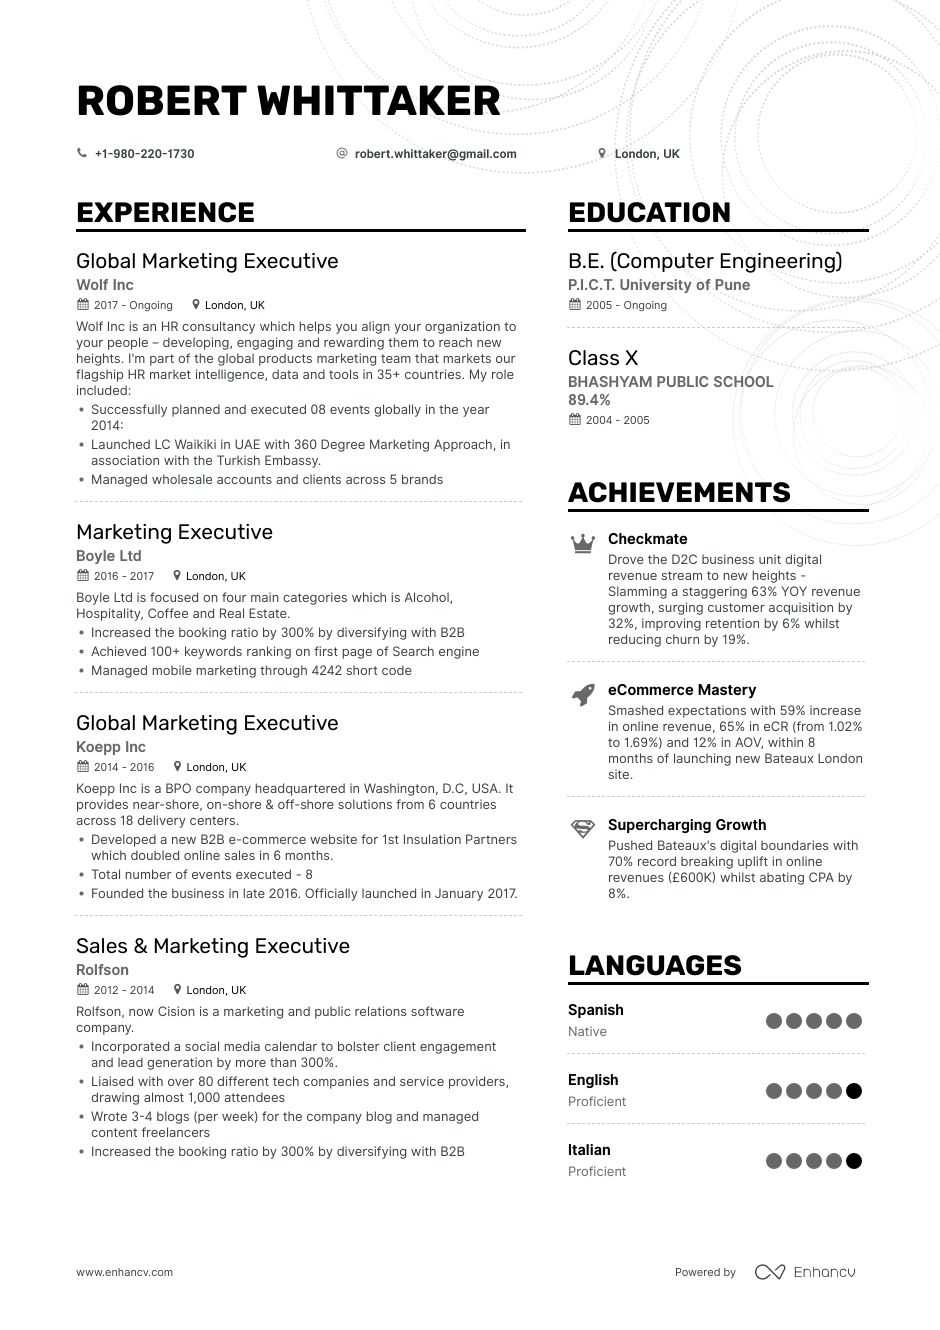 marketing executive resume examples pro tips featured enhancv sample format for customer Resume Sample Resume Format For Marketing Executive